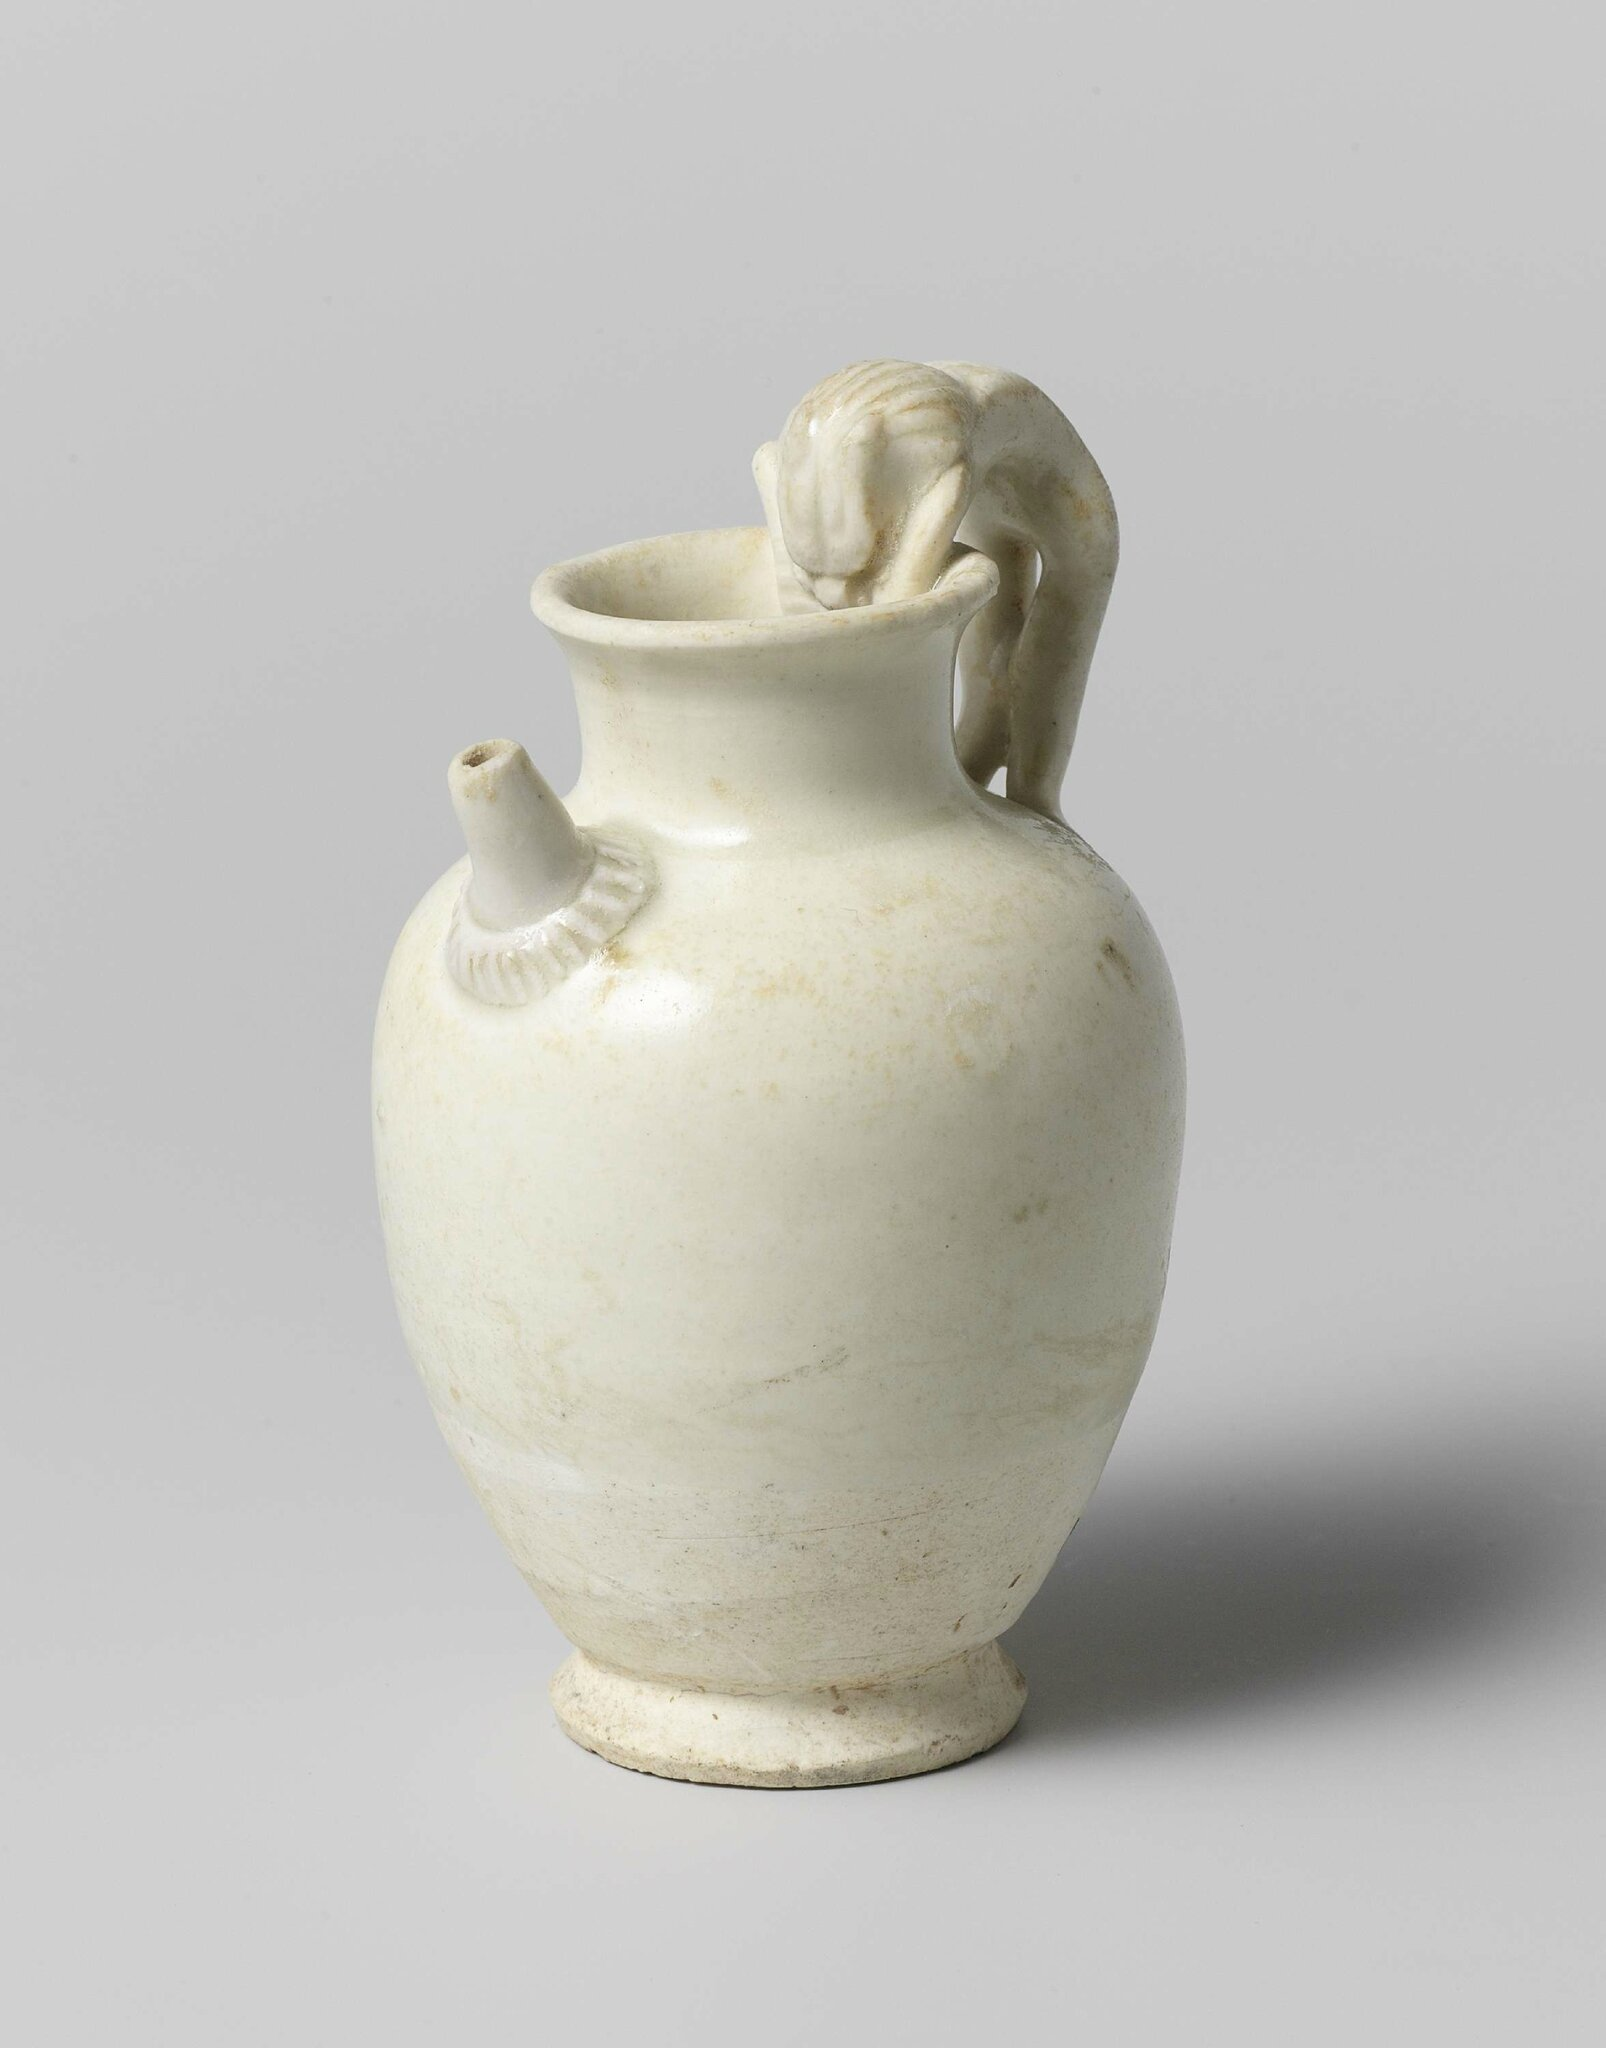 Vase with handle in the form of a lion, Tang dynasty, 618-907